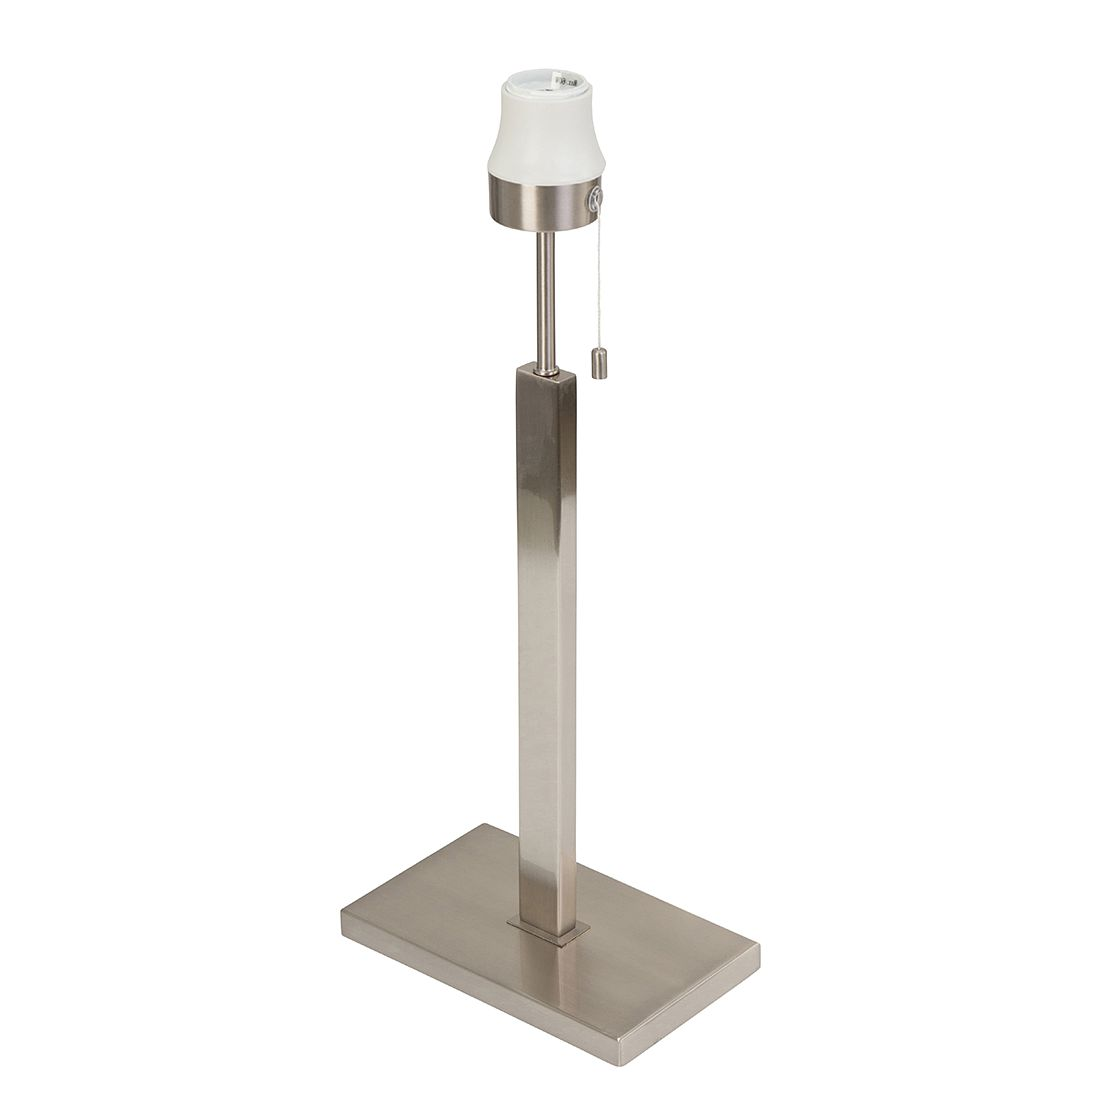 EEK A++, Lampe de table avec armature Louis - 1 ampoule Nickel mat, Steinhauer